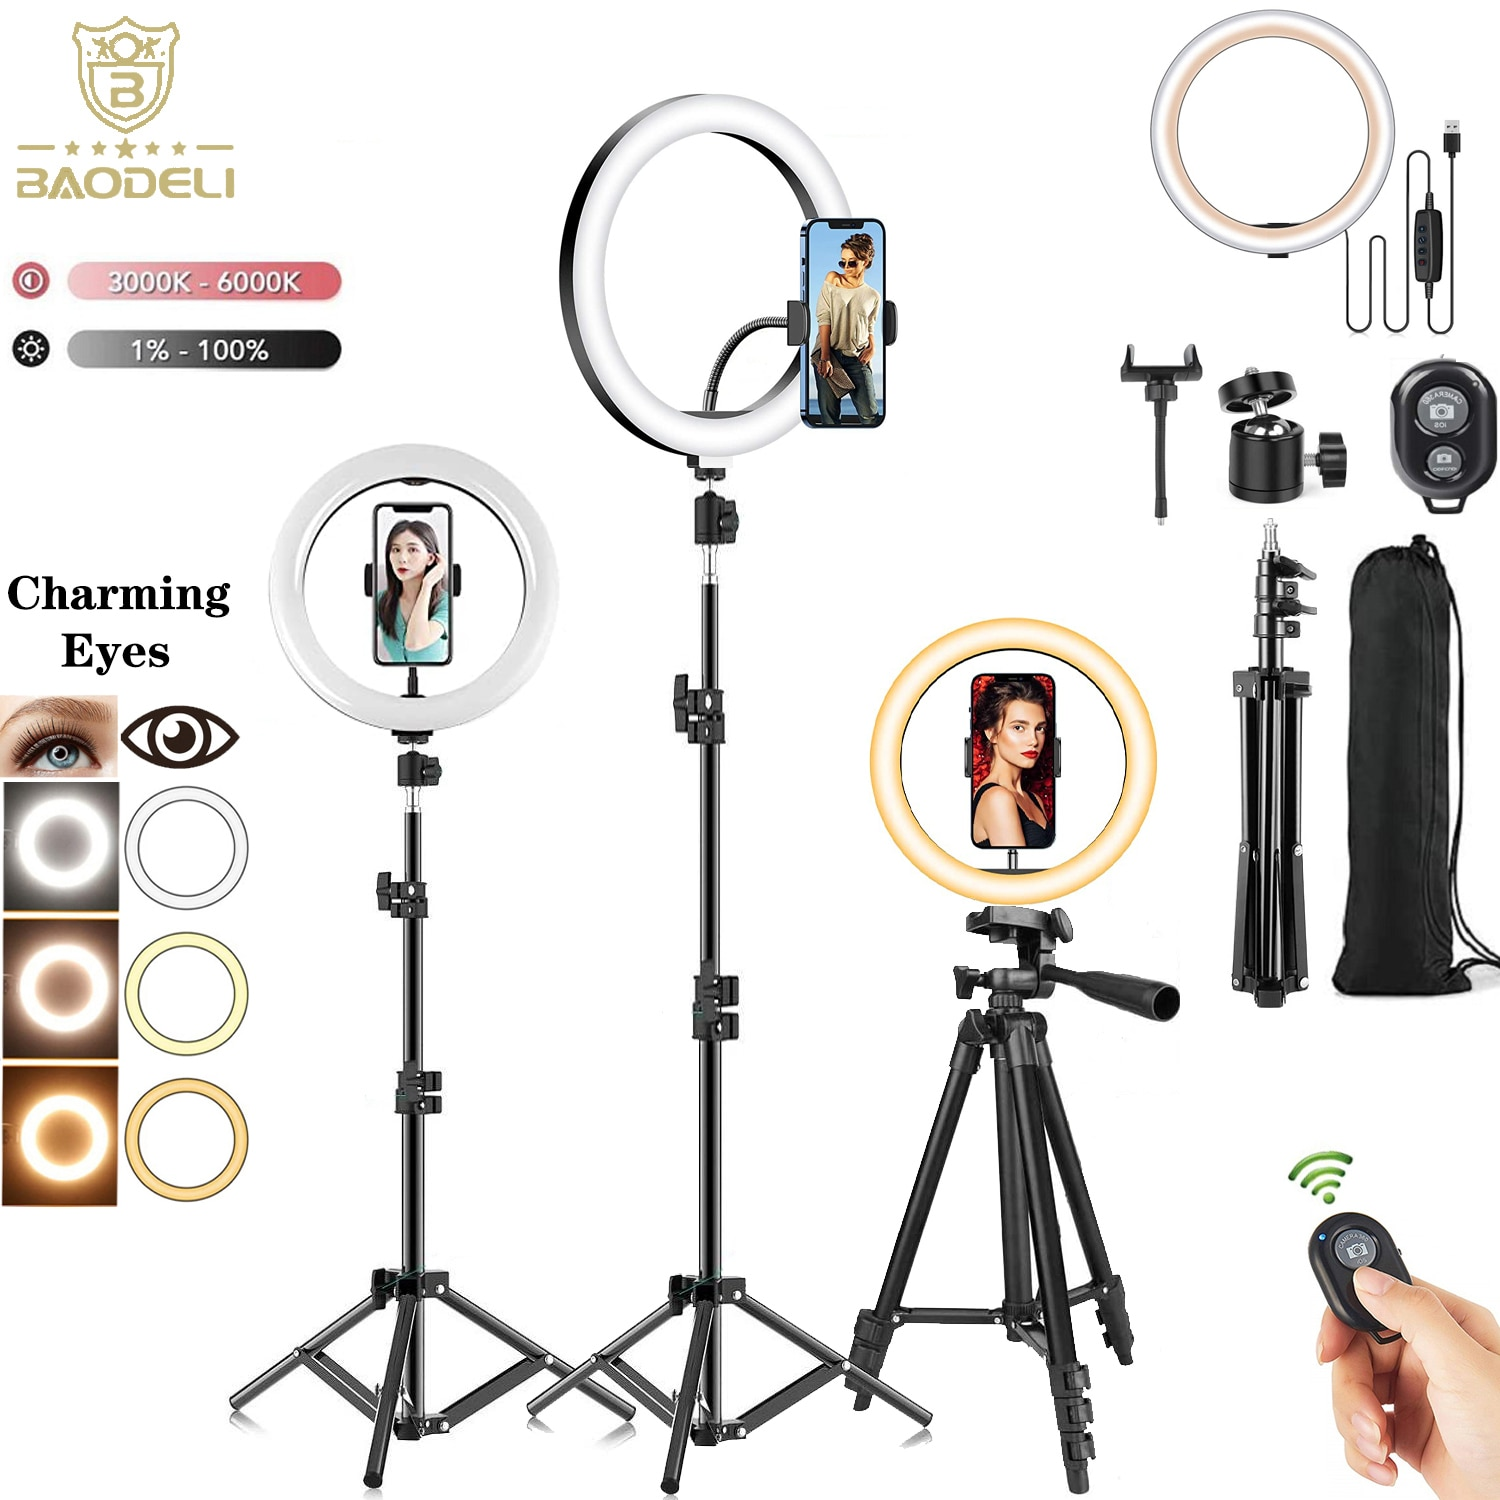 10'' 26cm LED Selfie Ring Light Photography RingLight Phone Stand Holder Tripod Circle Fill Light Dimmable Lamp Trepied Streaming